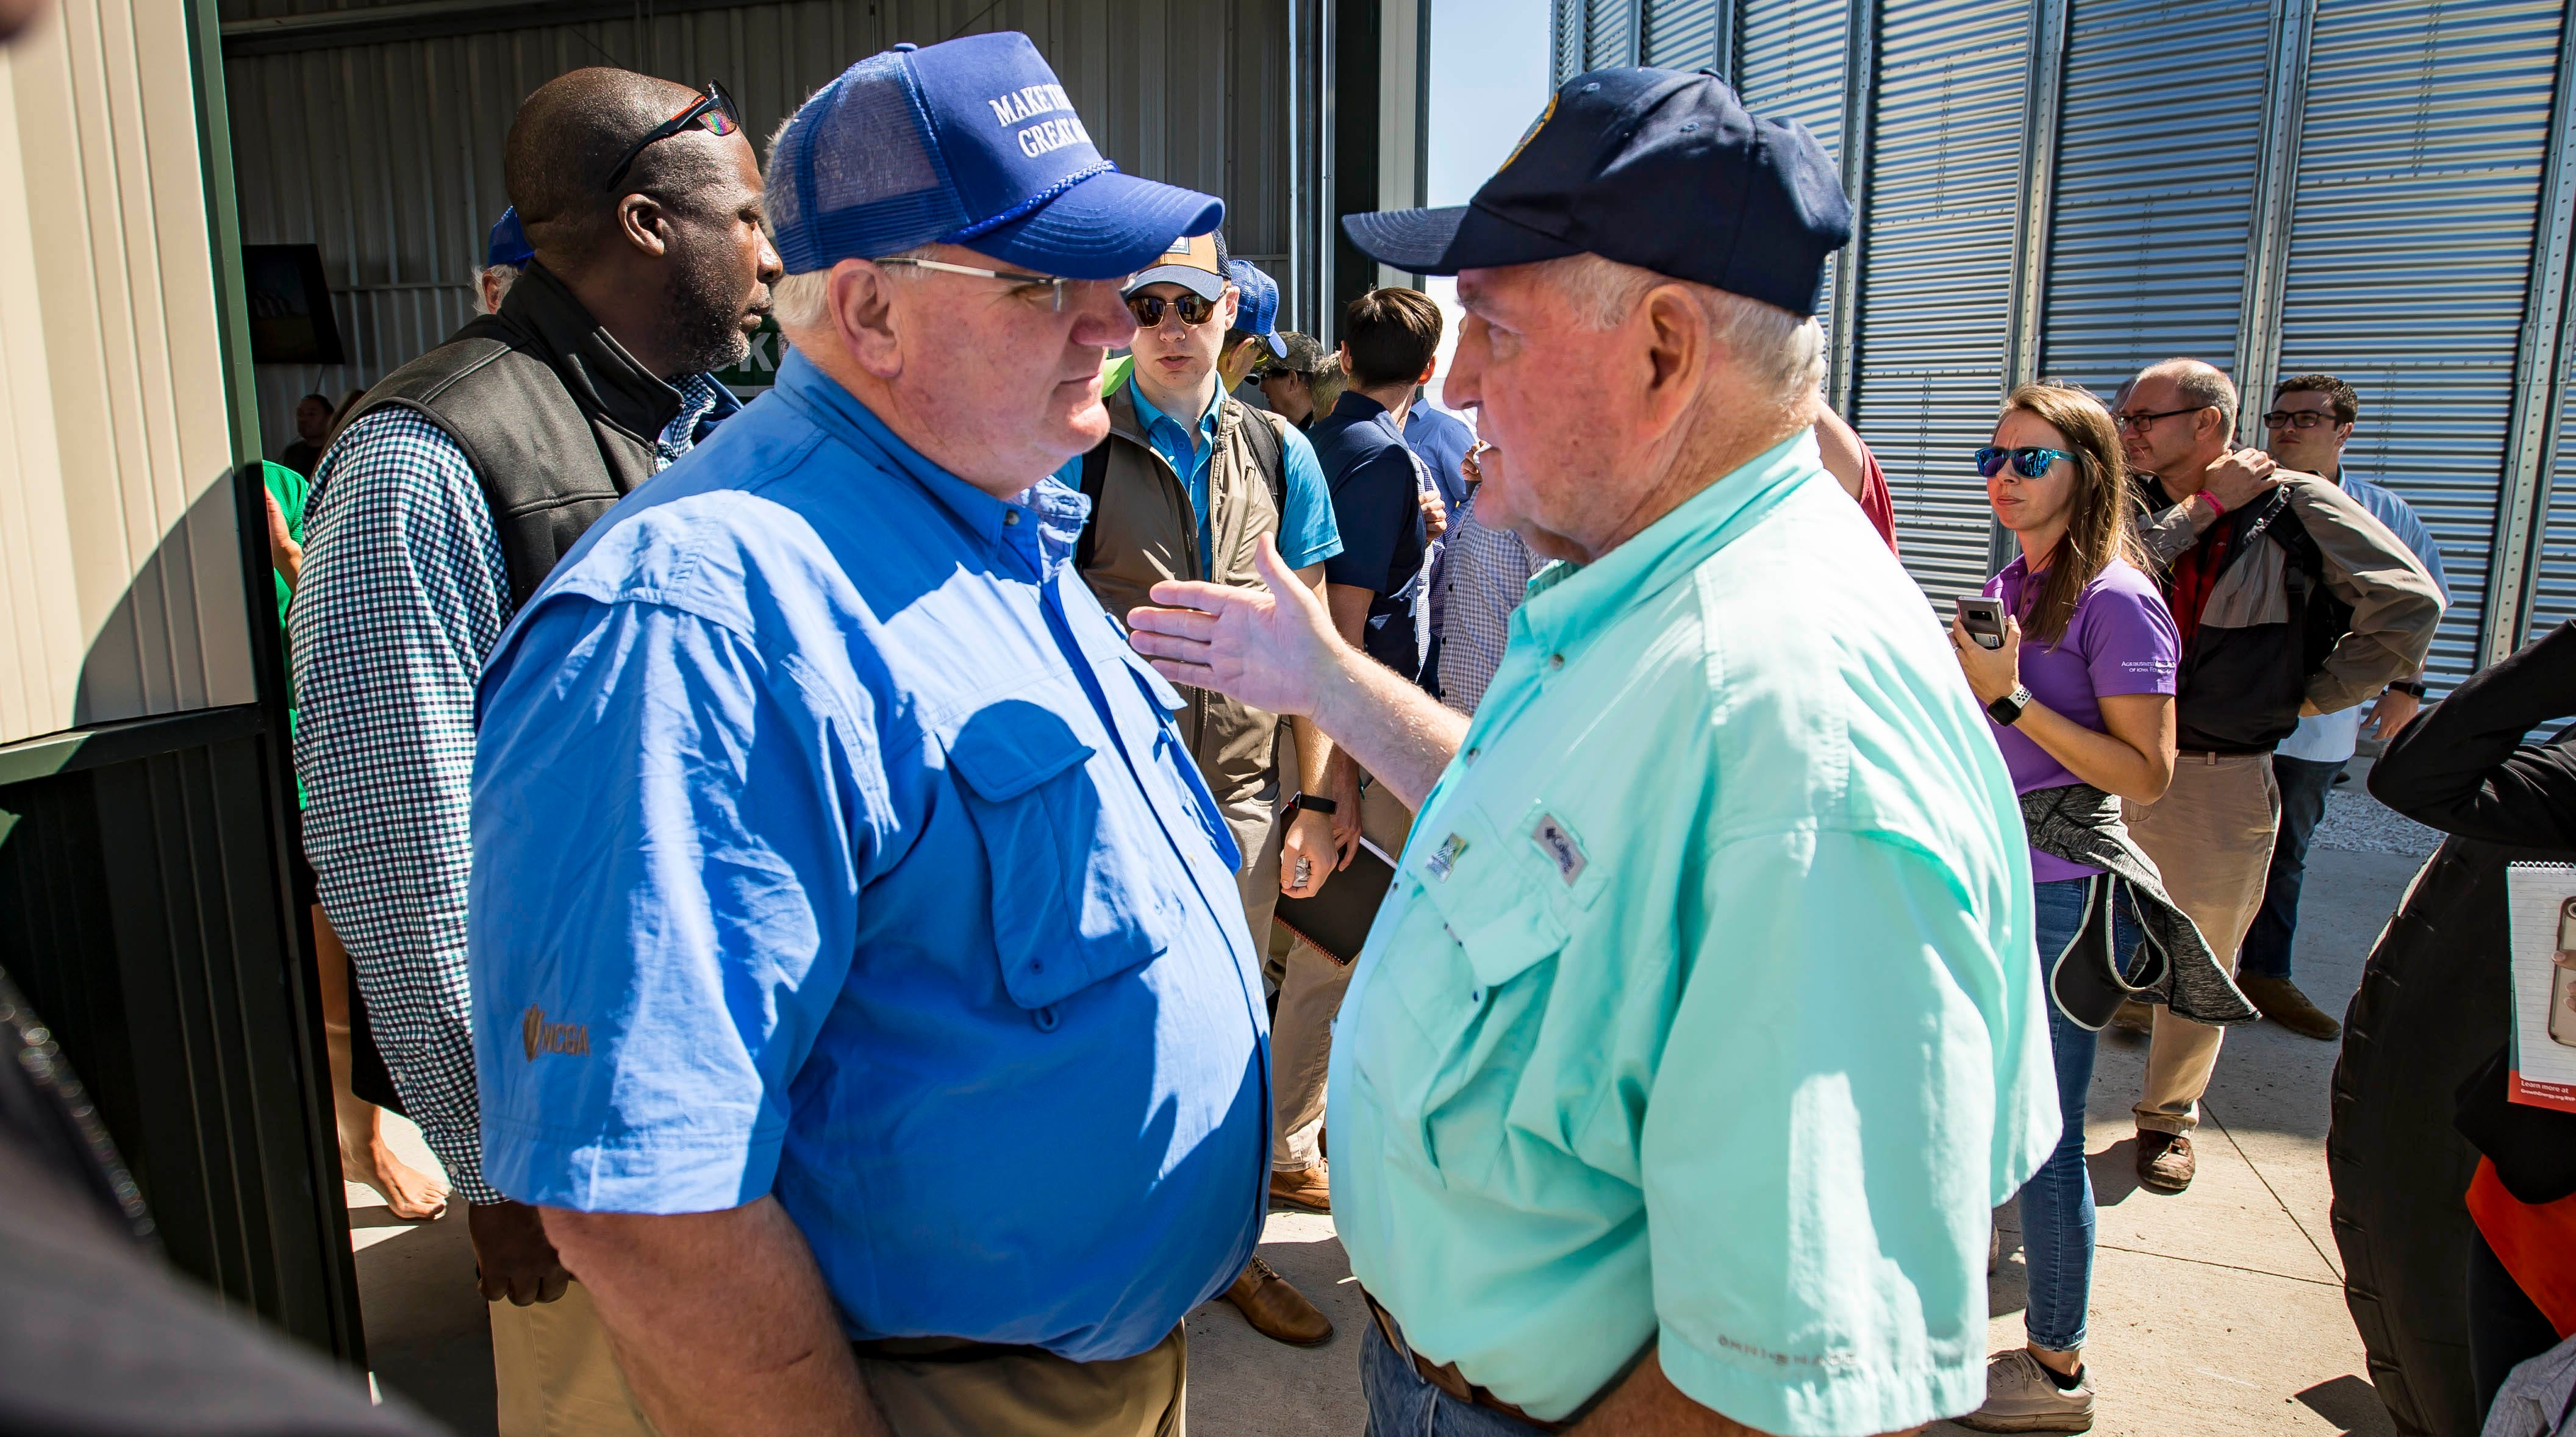 Sonny Perdue takes a turn as editor at a time when his boss derides the media as 'fake news'